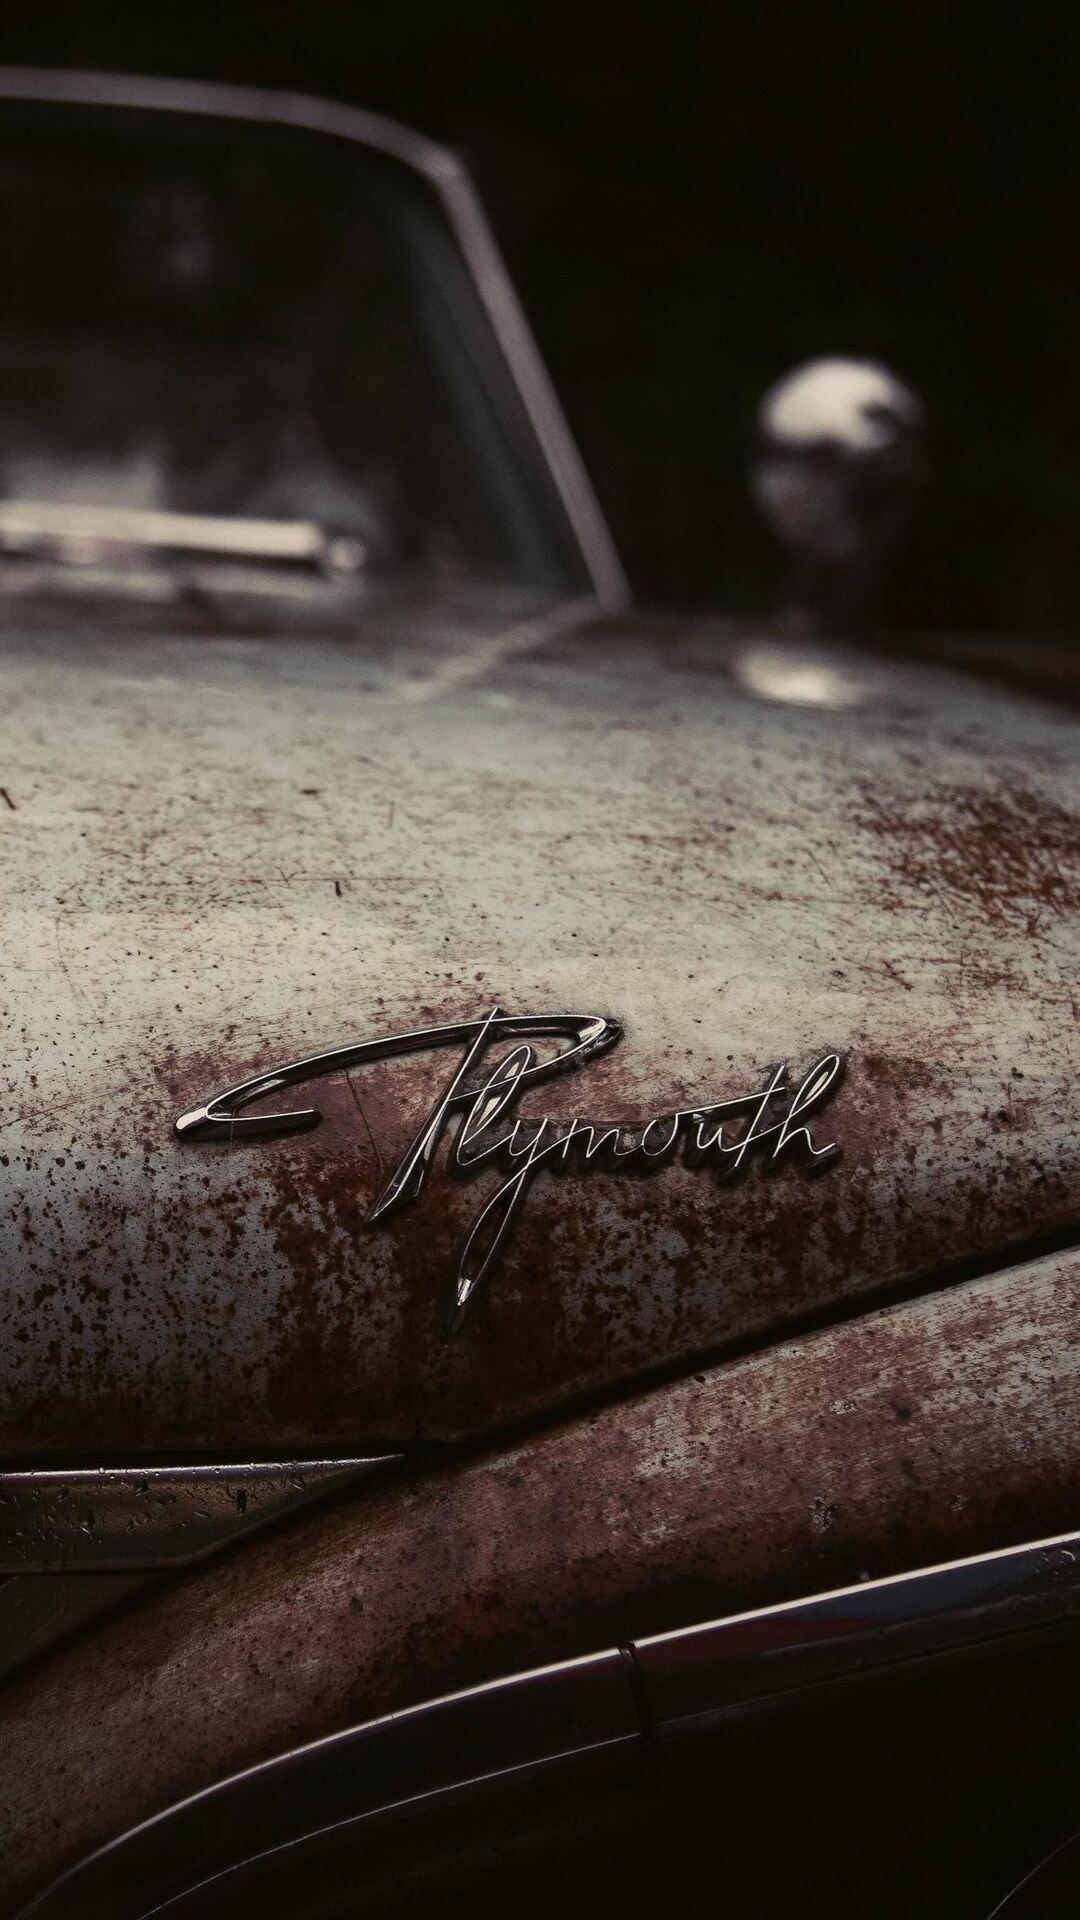 1080x1920 Vintage Retro Car Iphone 7 6s 6 Plus Pixel Xl One Plus 3